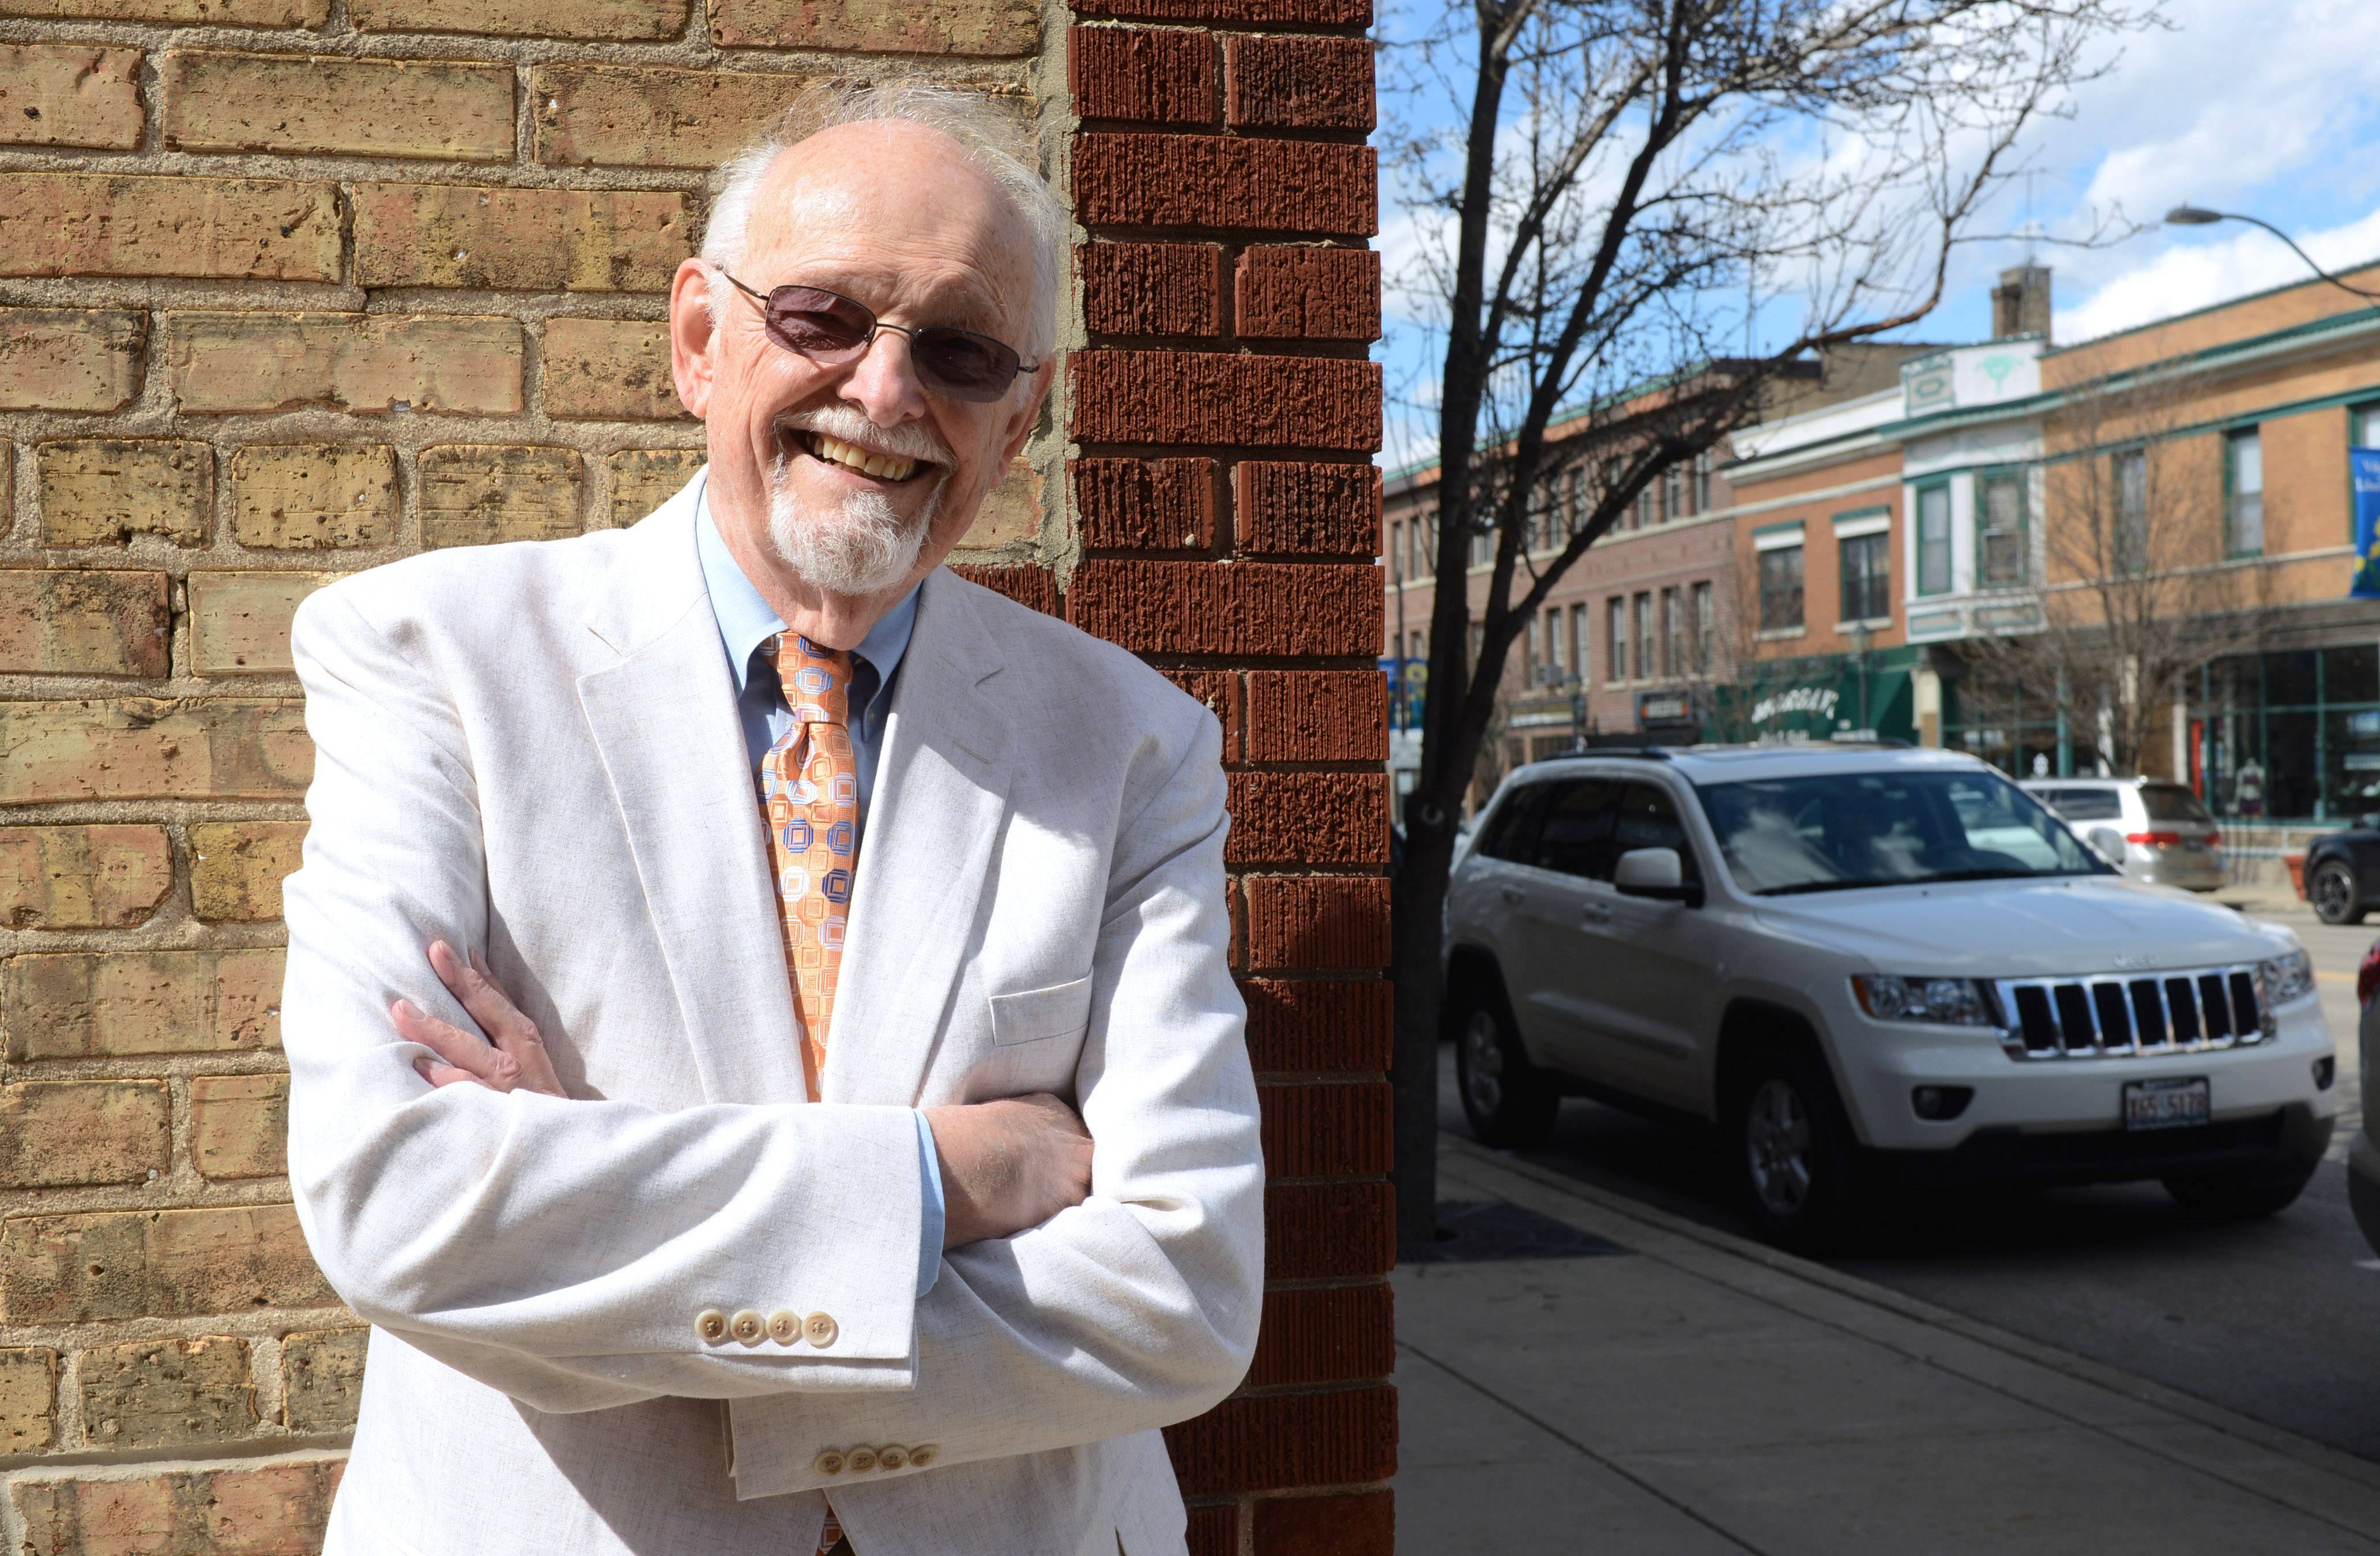 Dan Mayworm was the catalyst for MainStreet Libertyville and its original chairman.